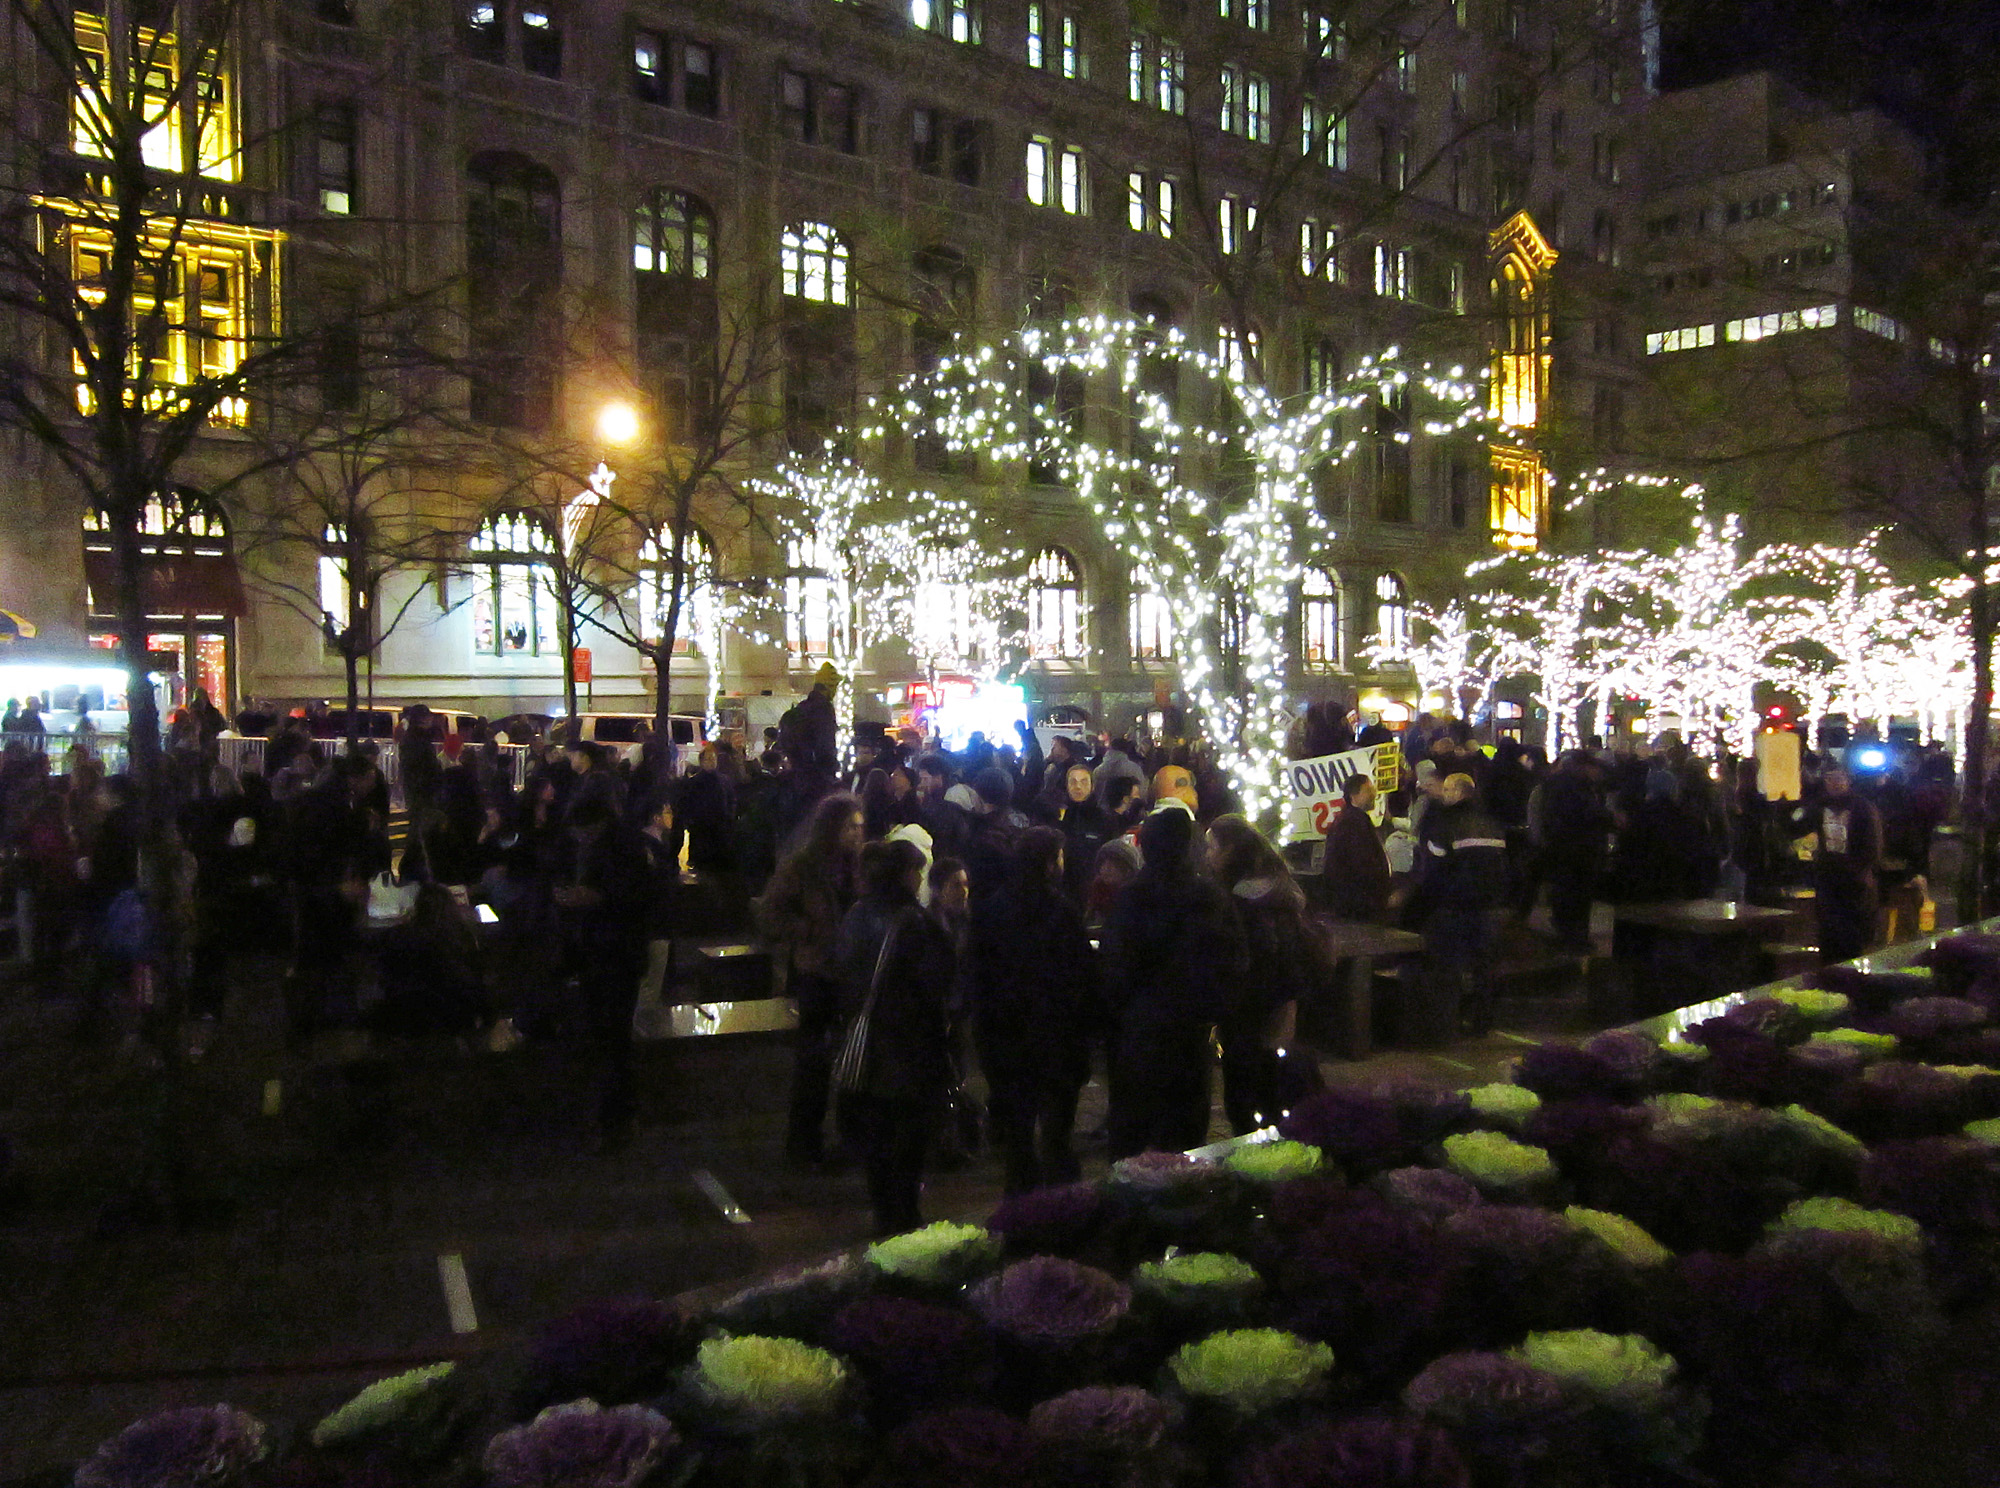 Zuccotti Park is still very much alive